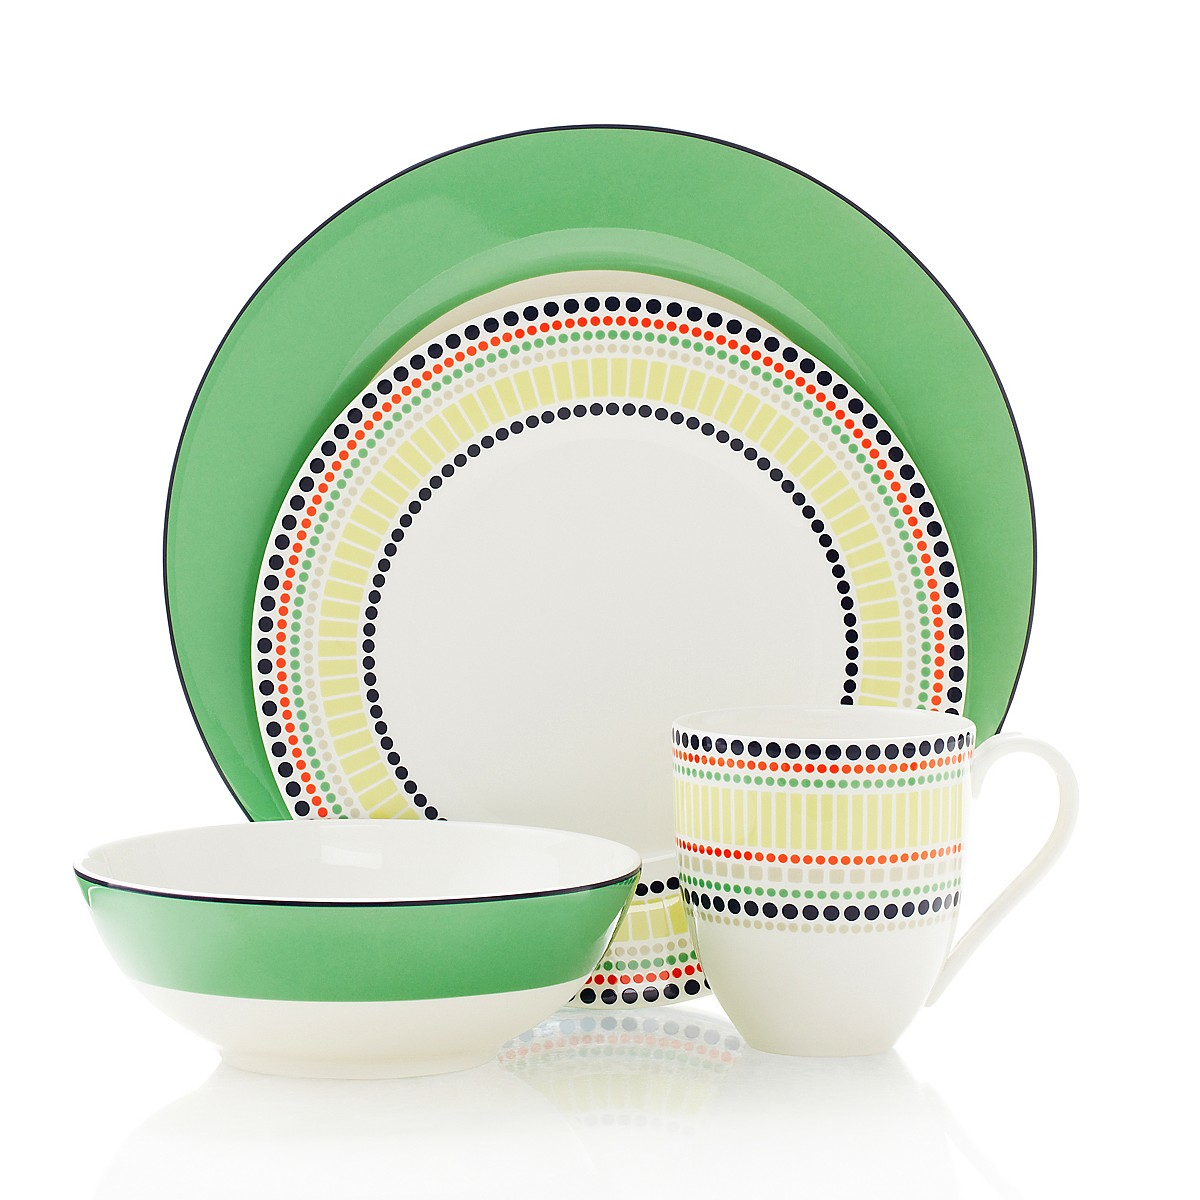 Kate Spade China | Kate Spade Dishes | Kate Spade China Sale